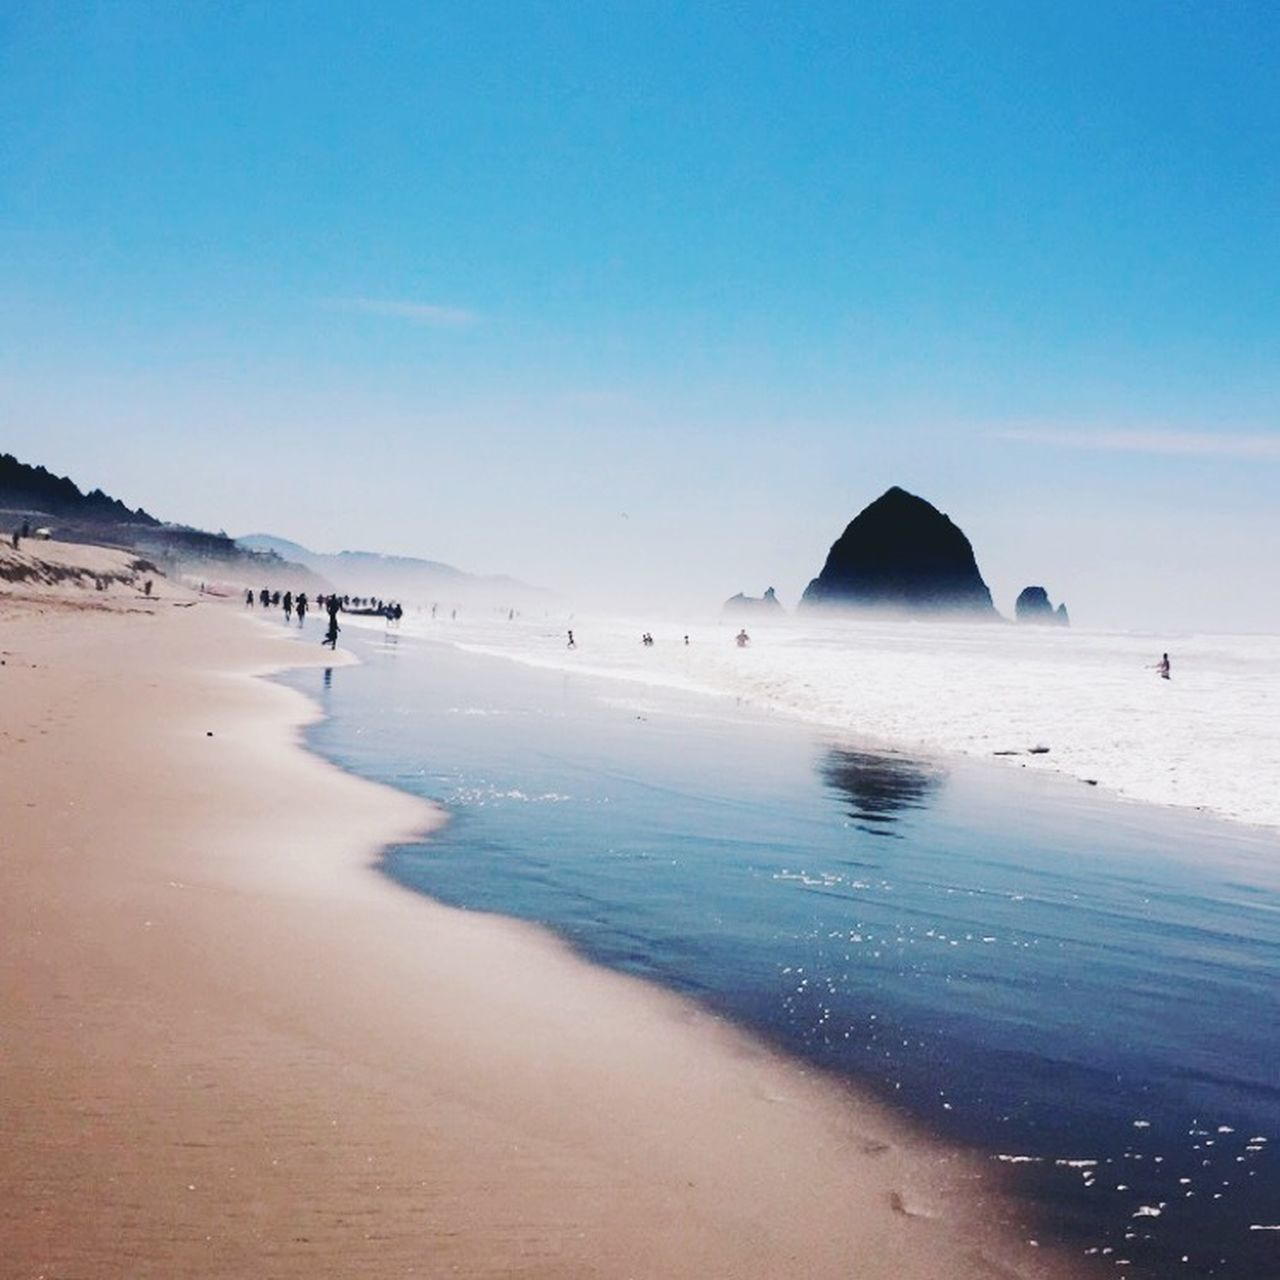 water, sea, sky, land, scenics - nature, beach, beauty in nature, tranquility, tranquil scene, nature, blue, clear sky, sand, day, idyllic, non-urban scene, copy space, no people, outdoors